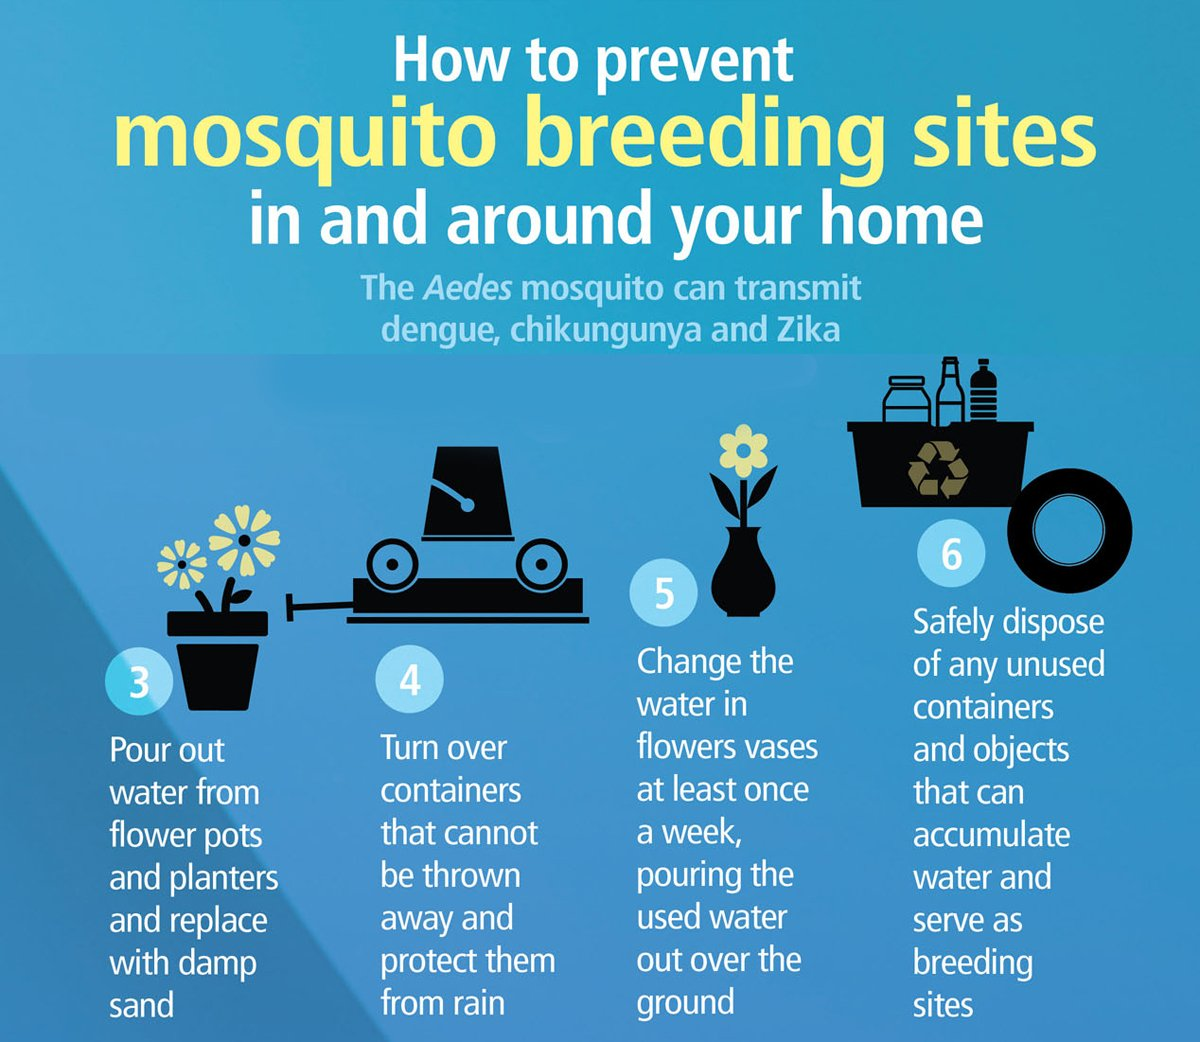 How to Prevent Mosquito Breeding in Rain Barrels images